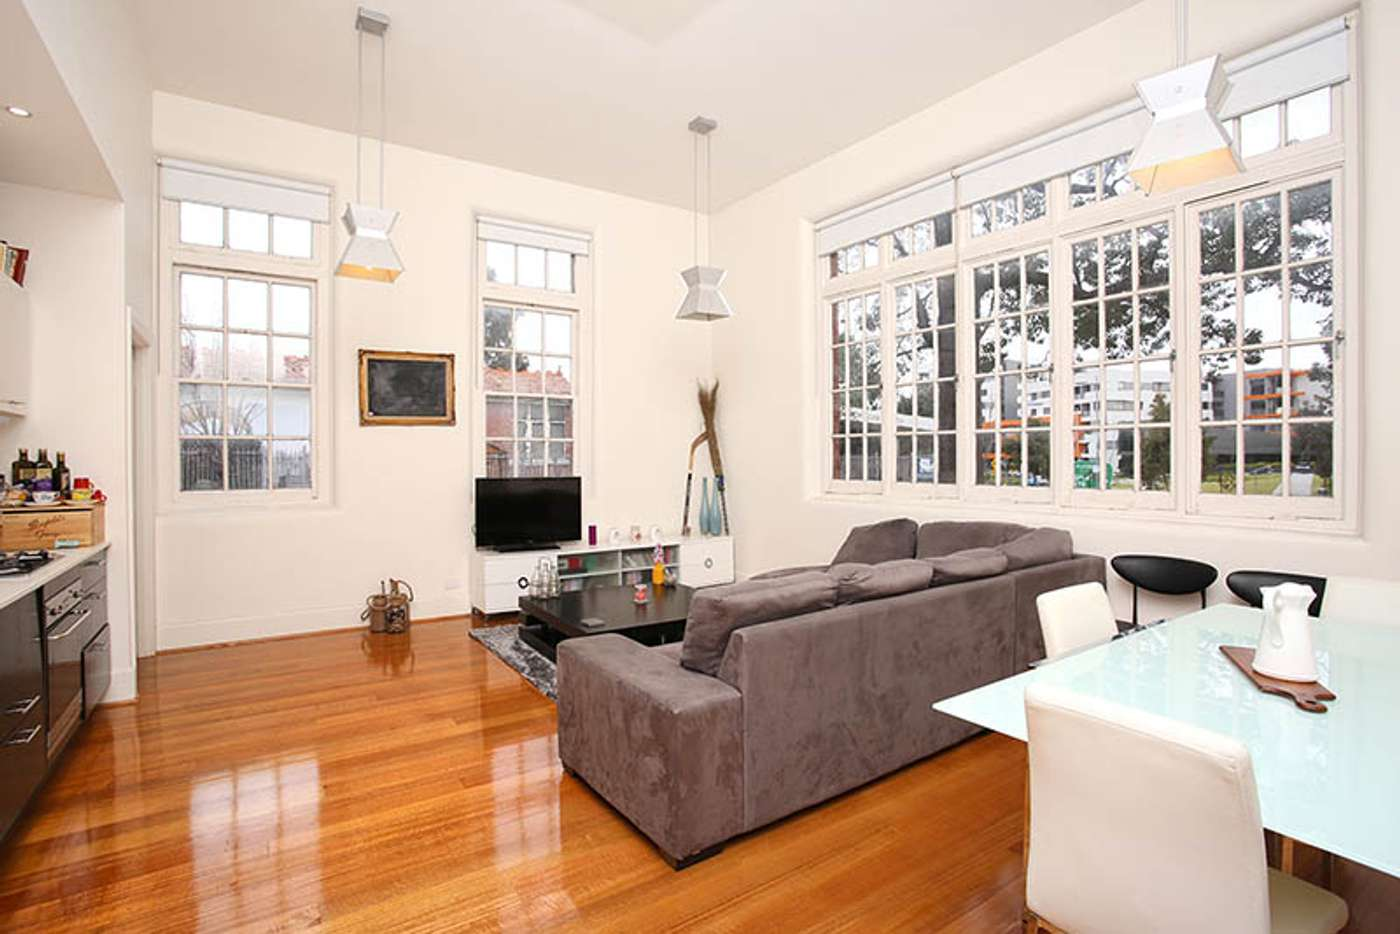 Main view of Homely apartment listing, 2/29 Manchester Lane, Parkville VIC 3052